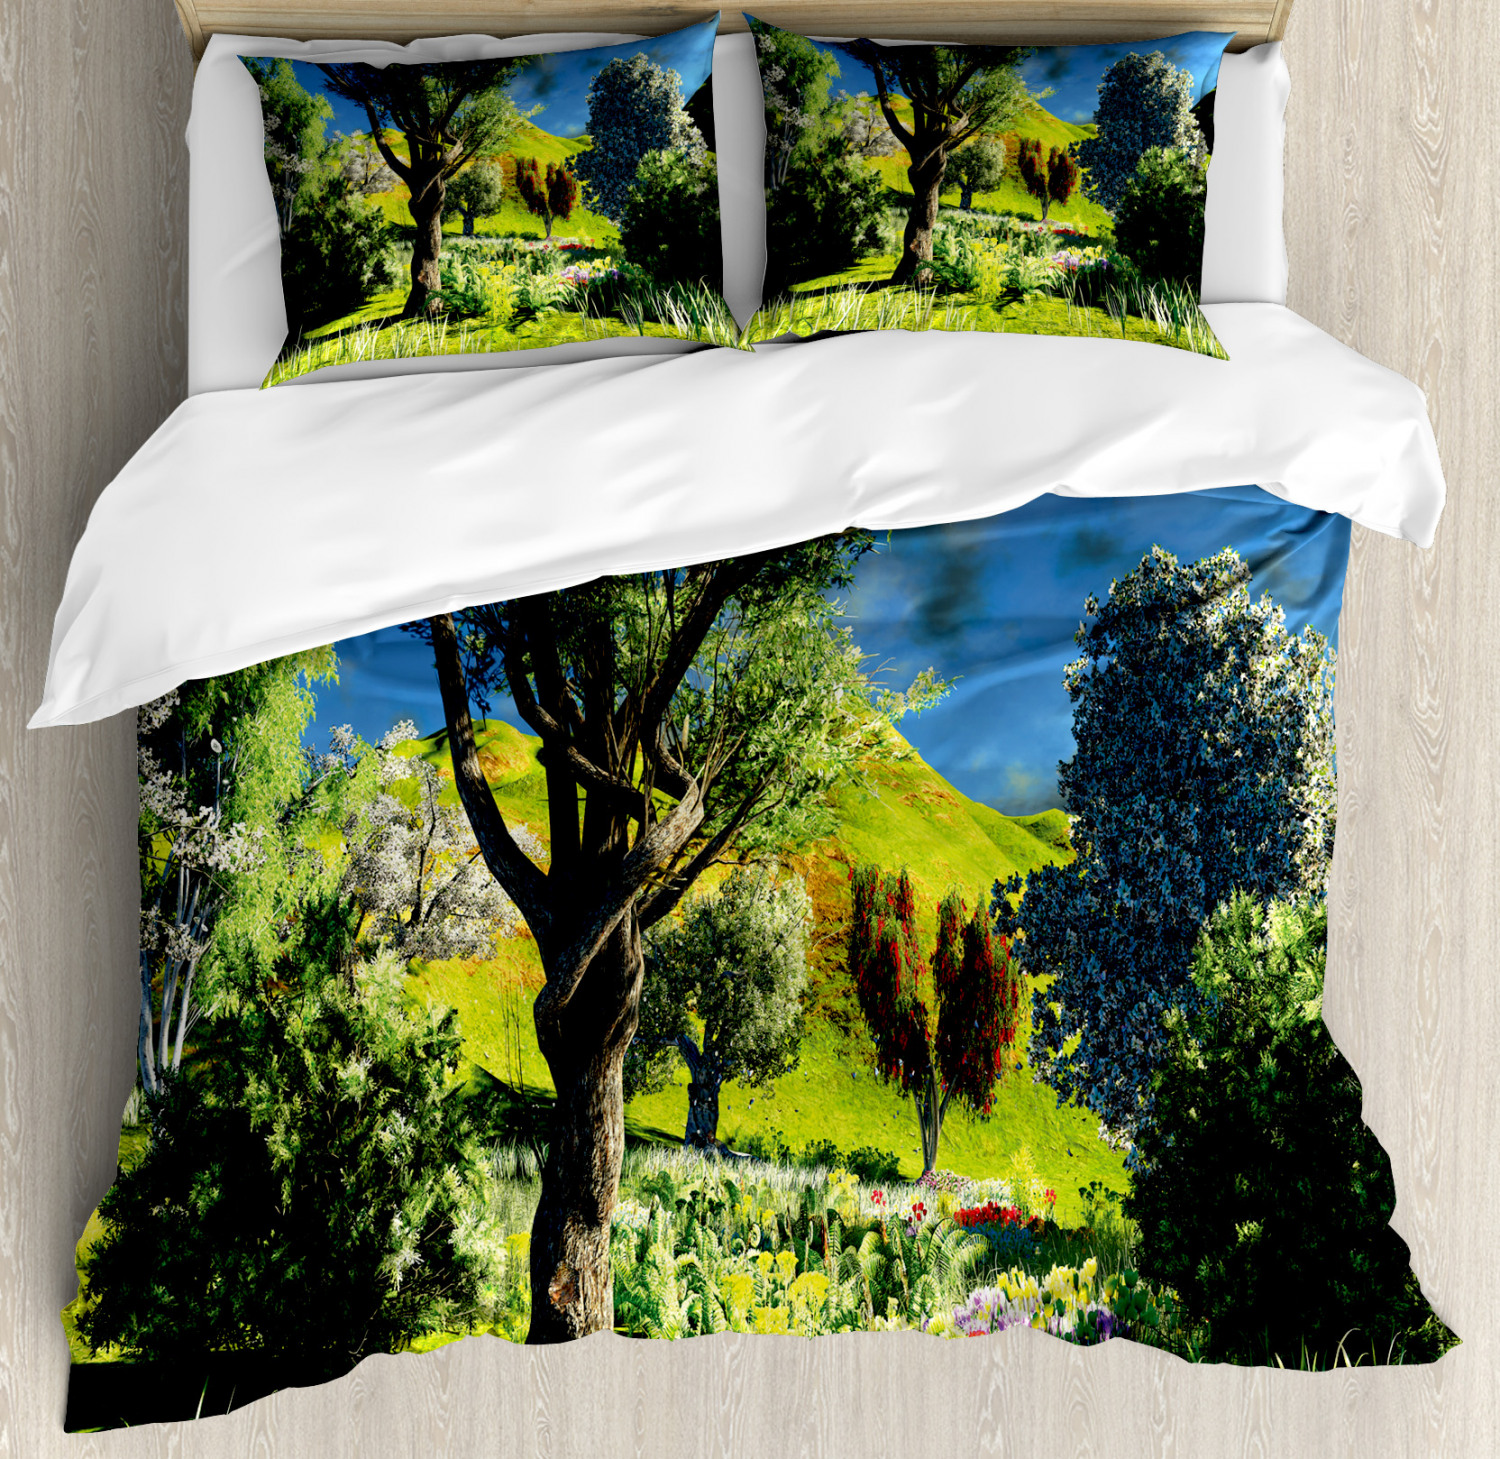 Nature Duvet Cover Set with Pillow Shams Wilderness Rural Scenery Print